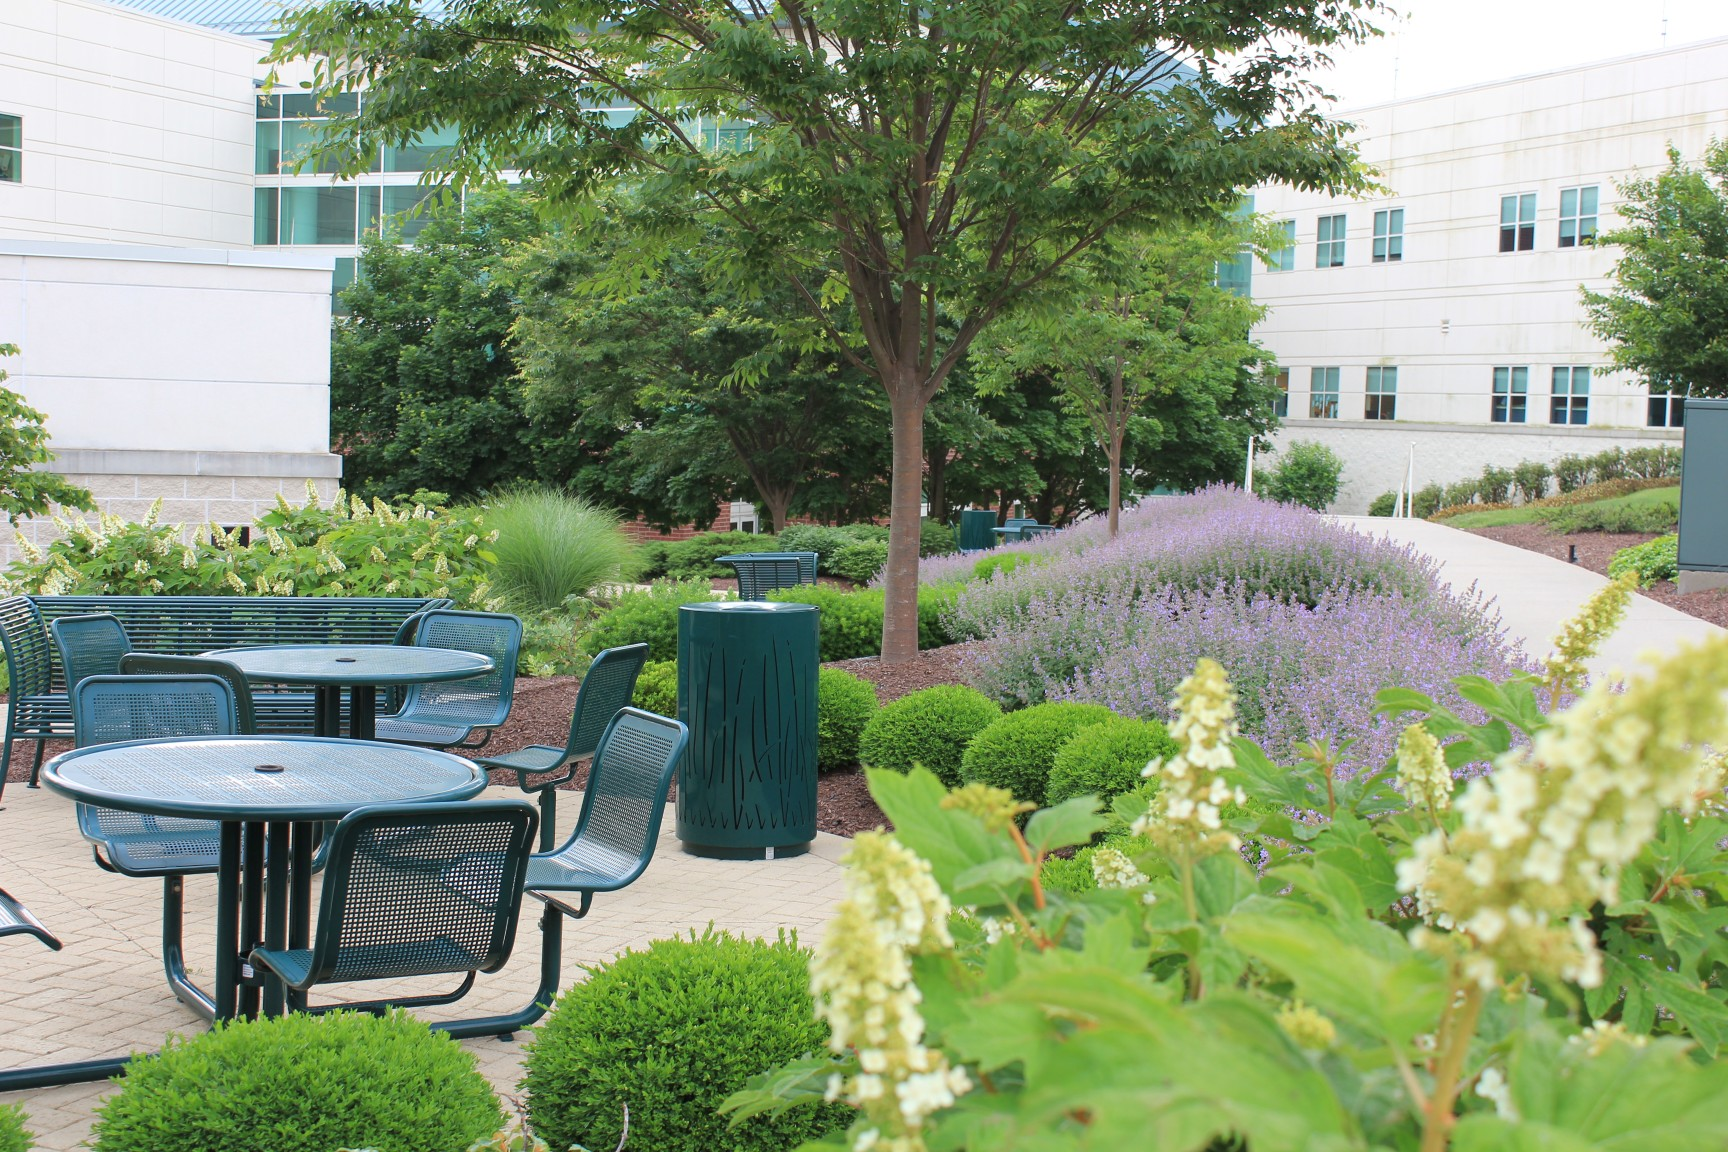 Professional landscaping for hospitals and healthcare facilities